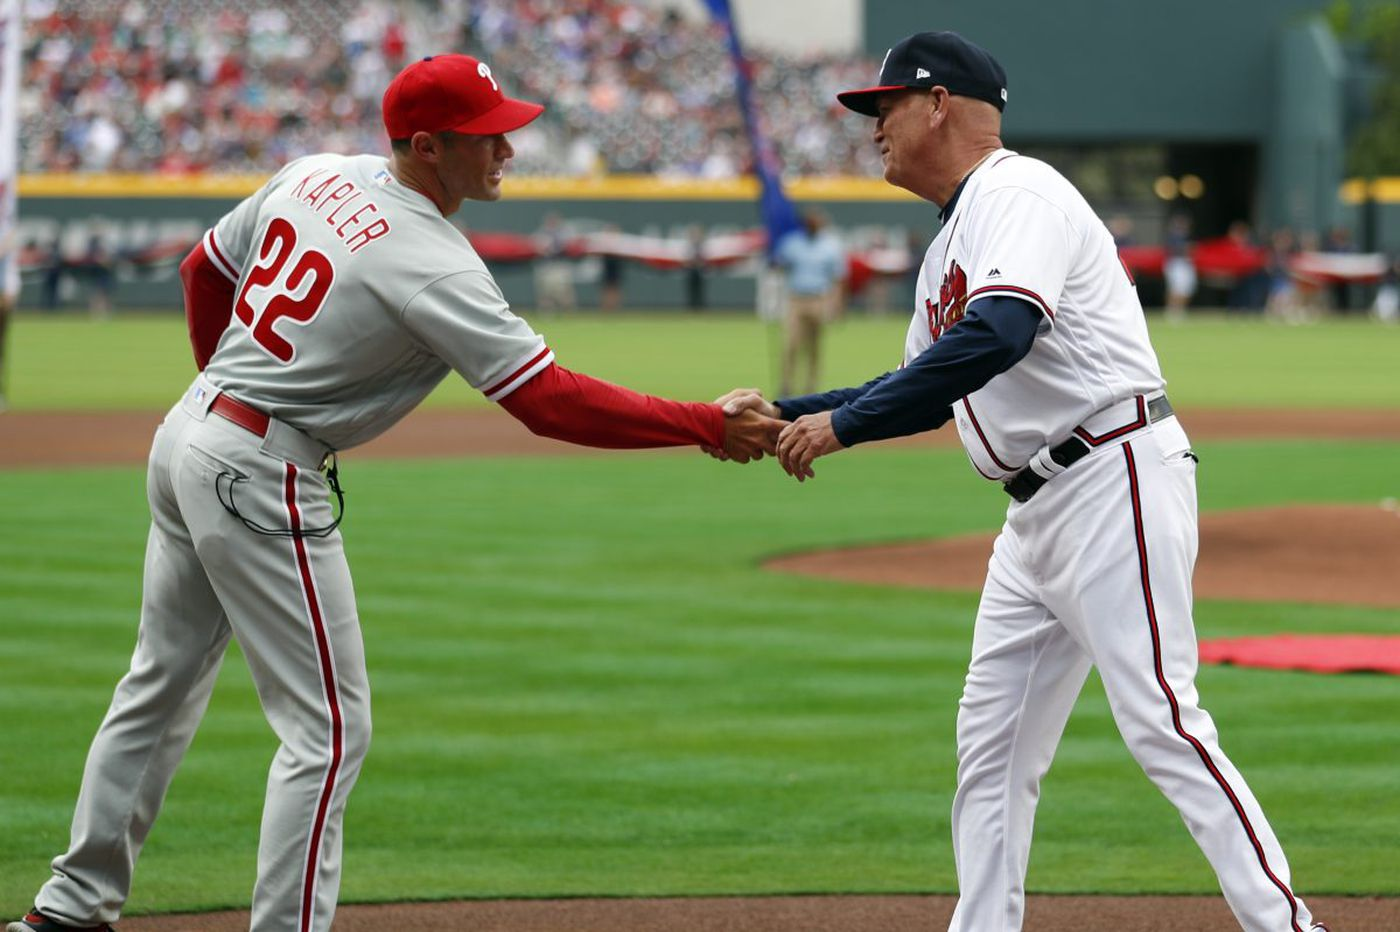 Gabe Kapler's managing-by-numbers approach backfires on him in Phillies debut   Bob Brookover